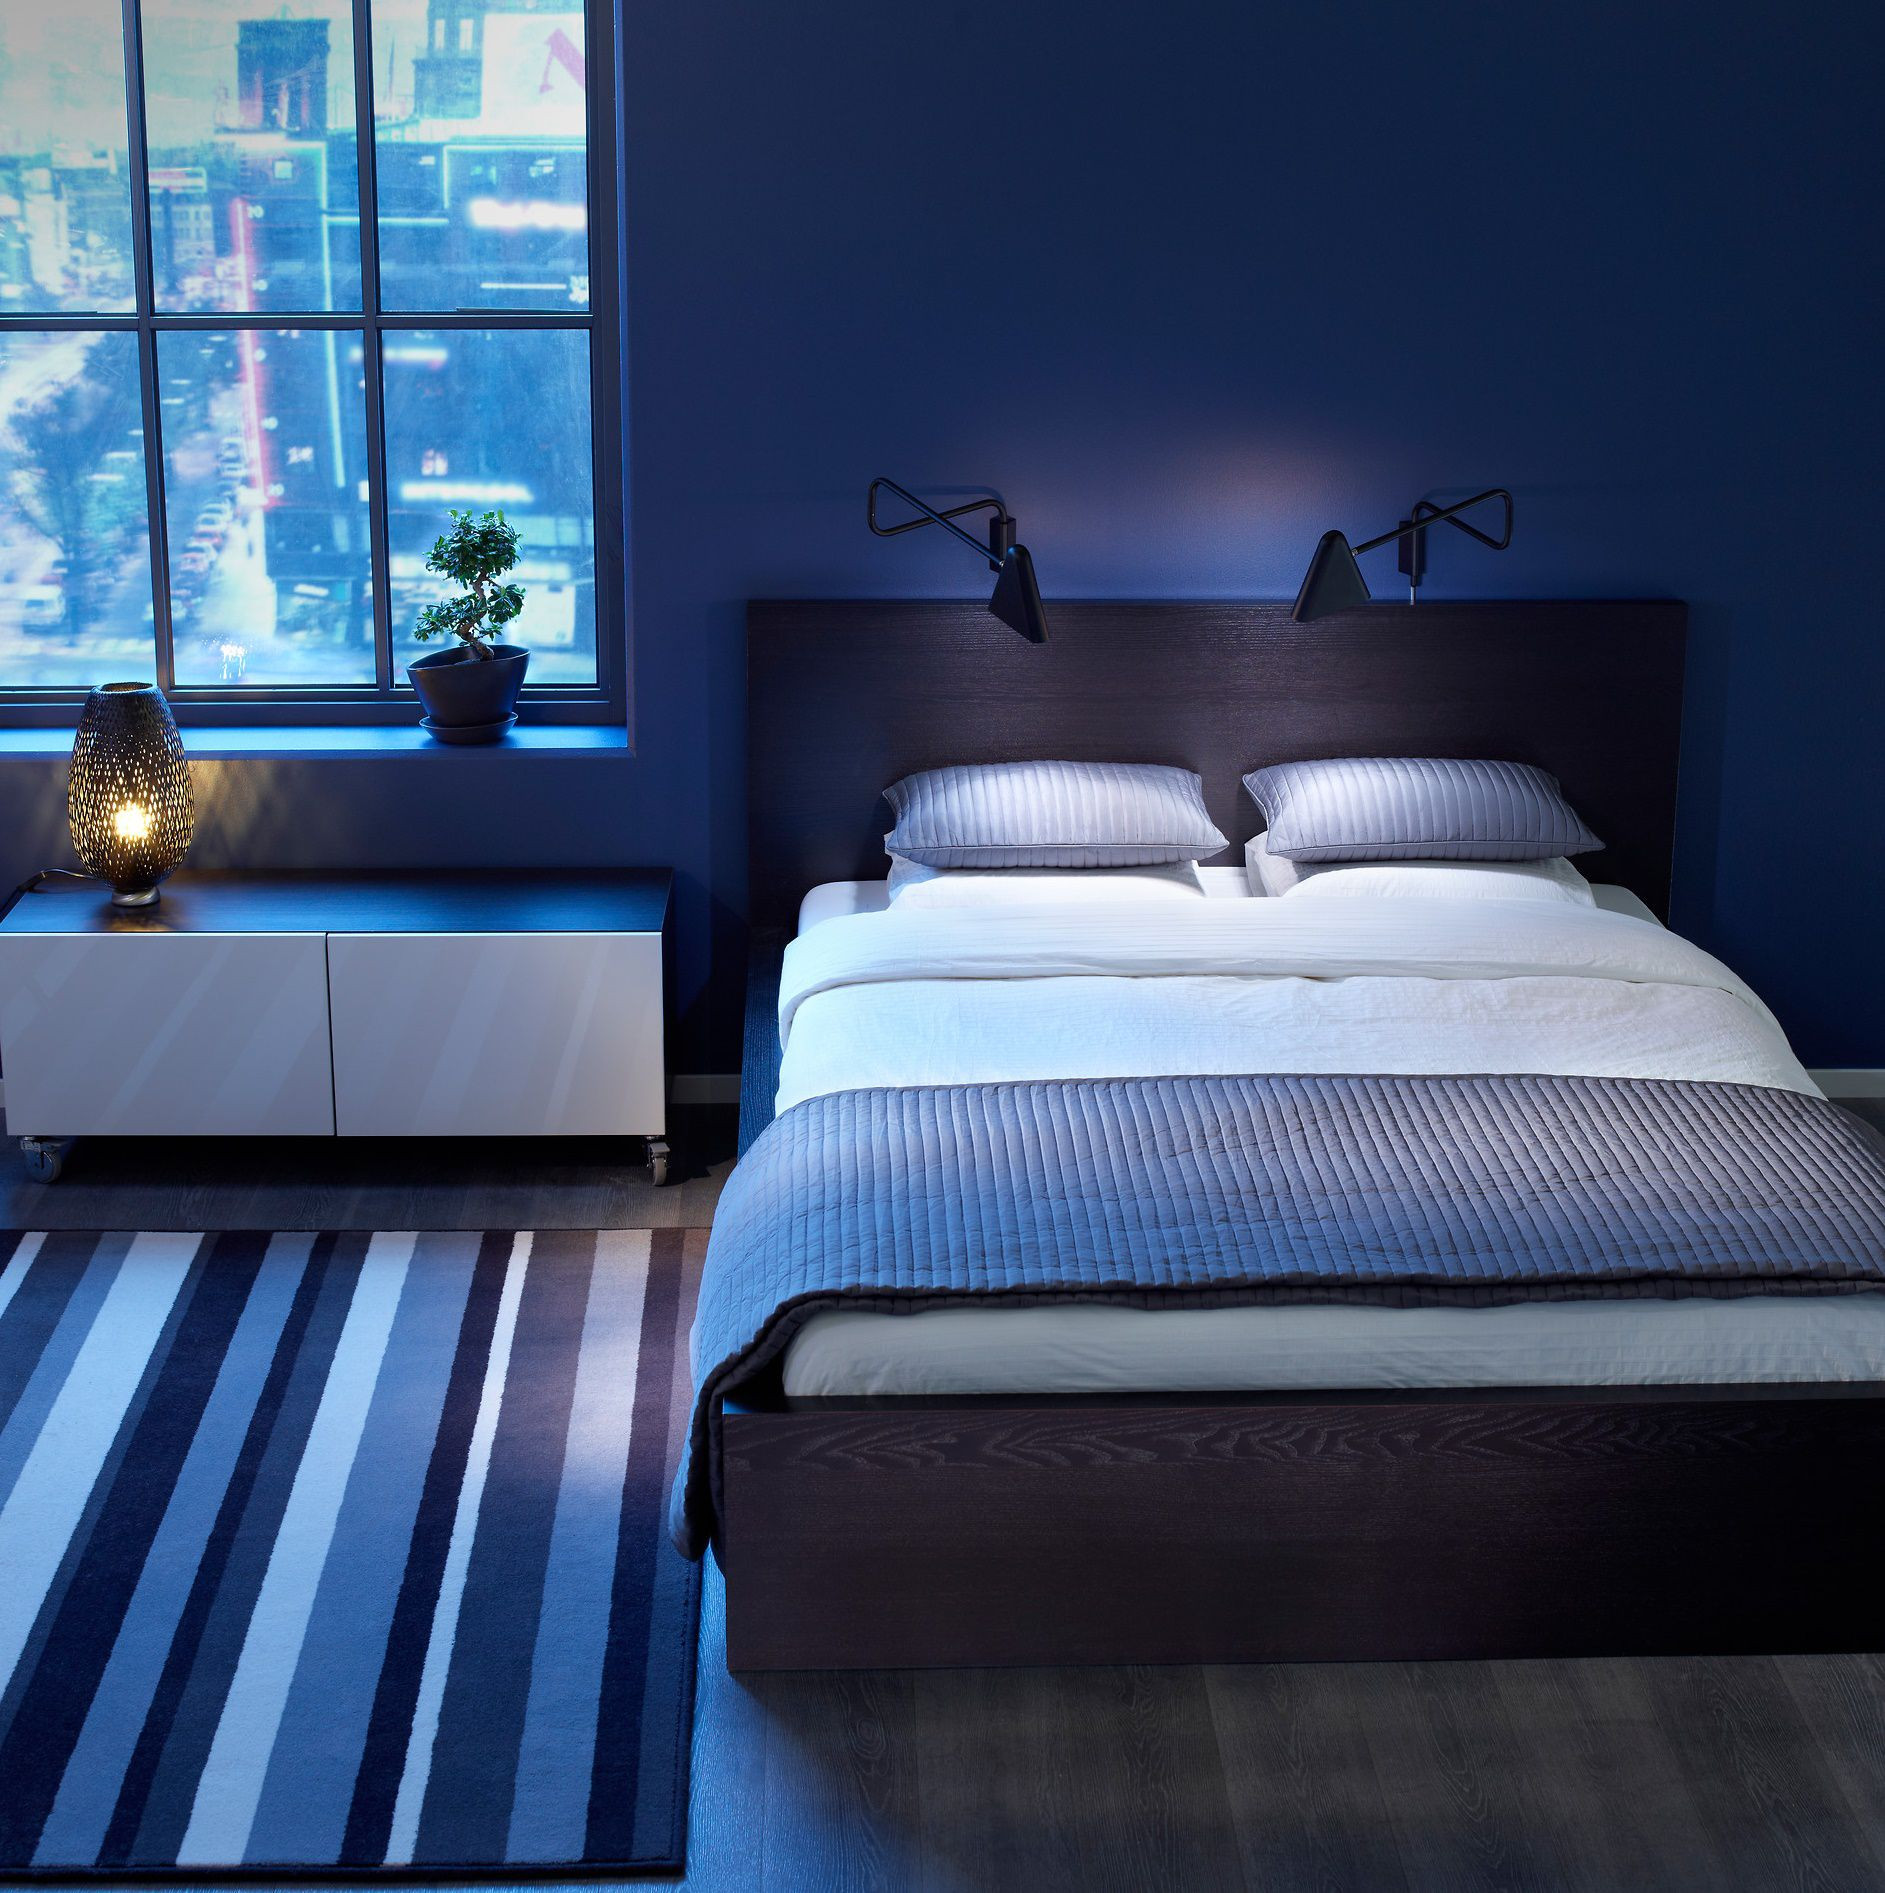 Wall Paint Ideas For Bedroom  How to Apply the Best Bedroom Wall Colors to Bring Happy